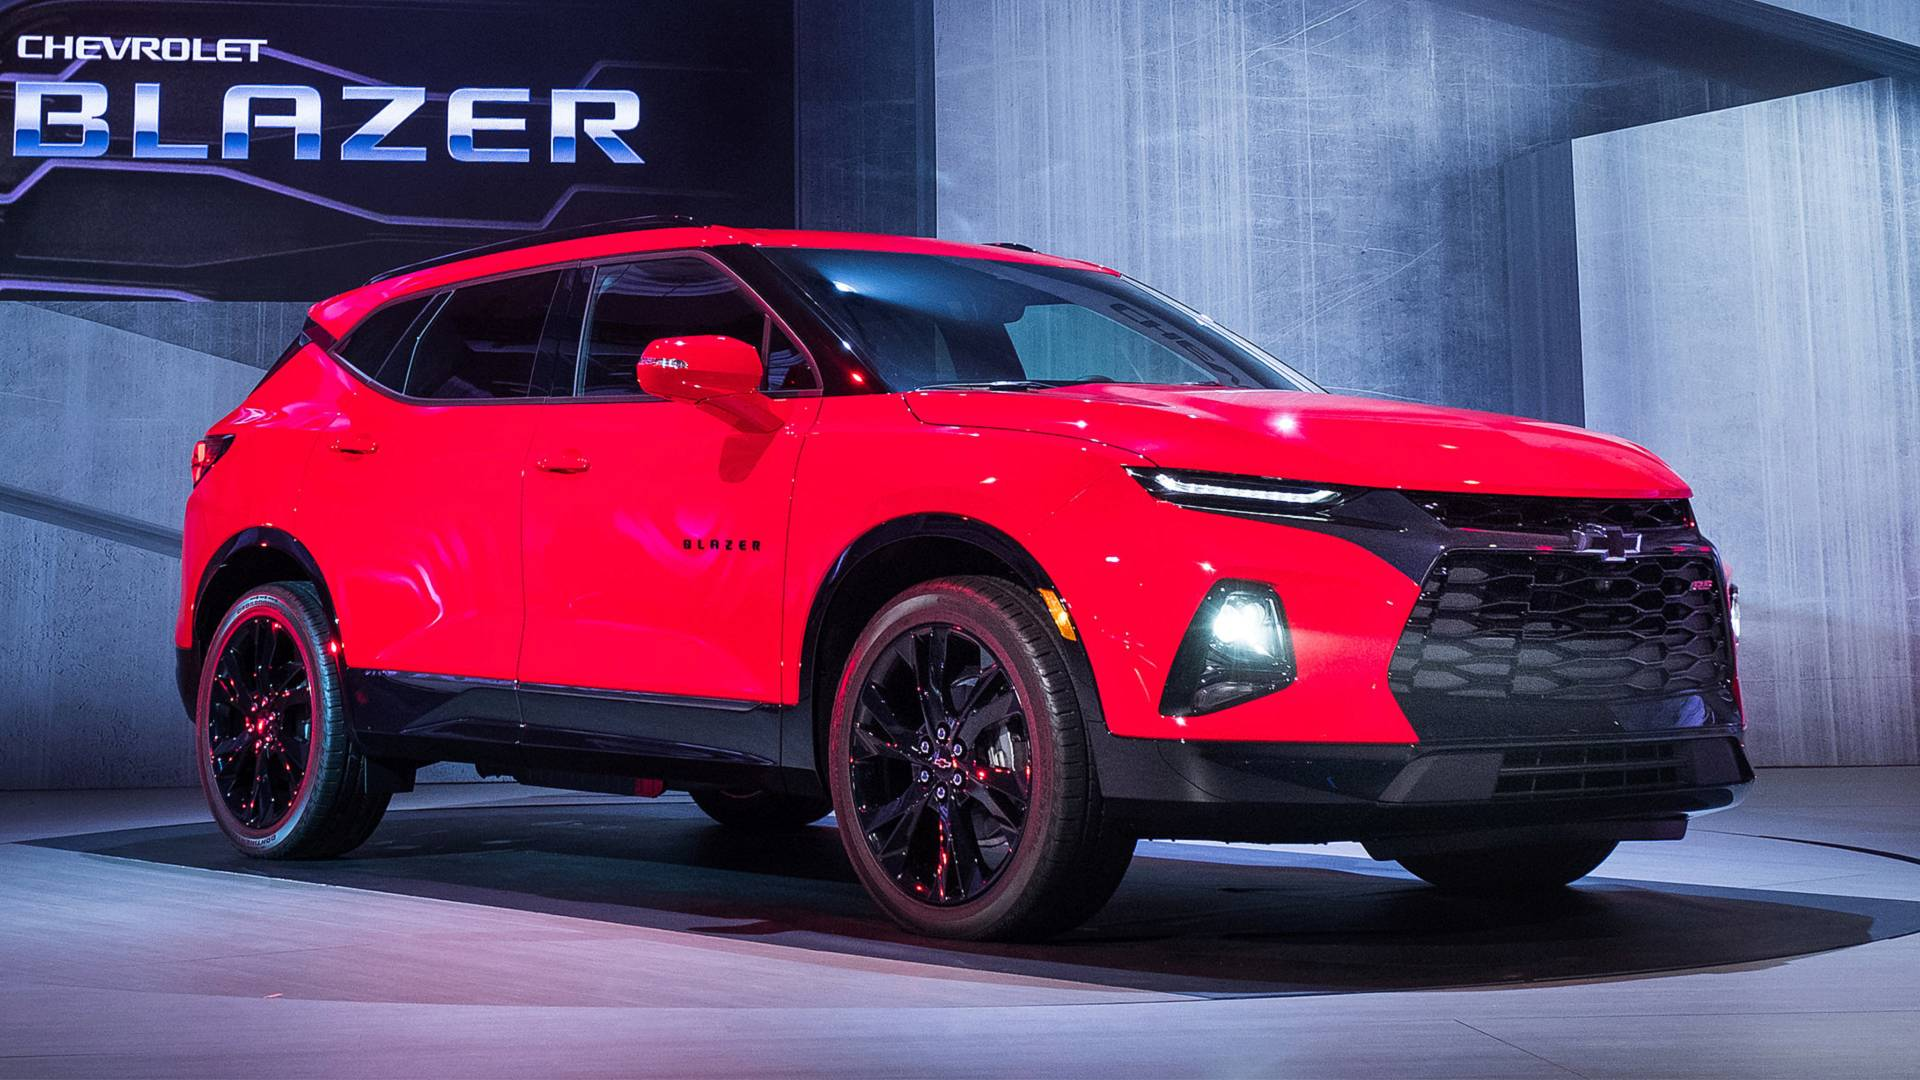 70 New Chevrolet Blazer 2020 Spy Shoot by Chevrolet Blazer 2020